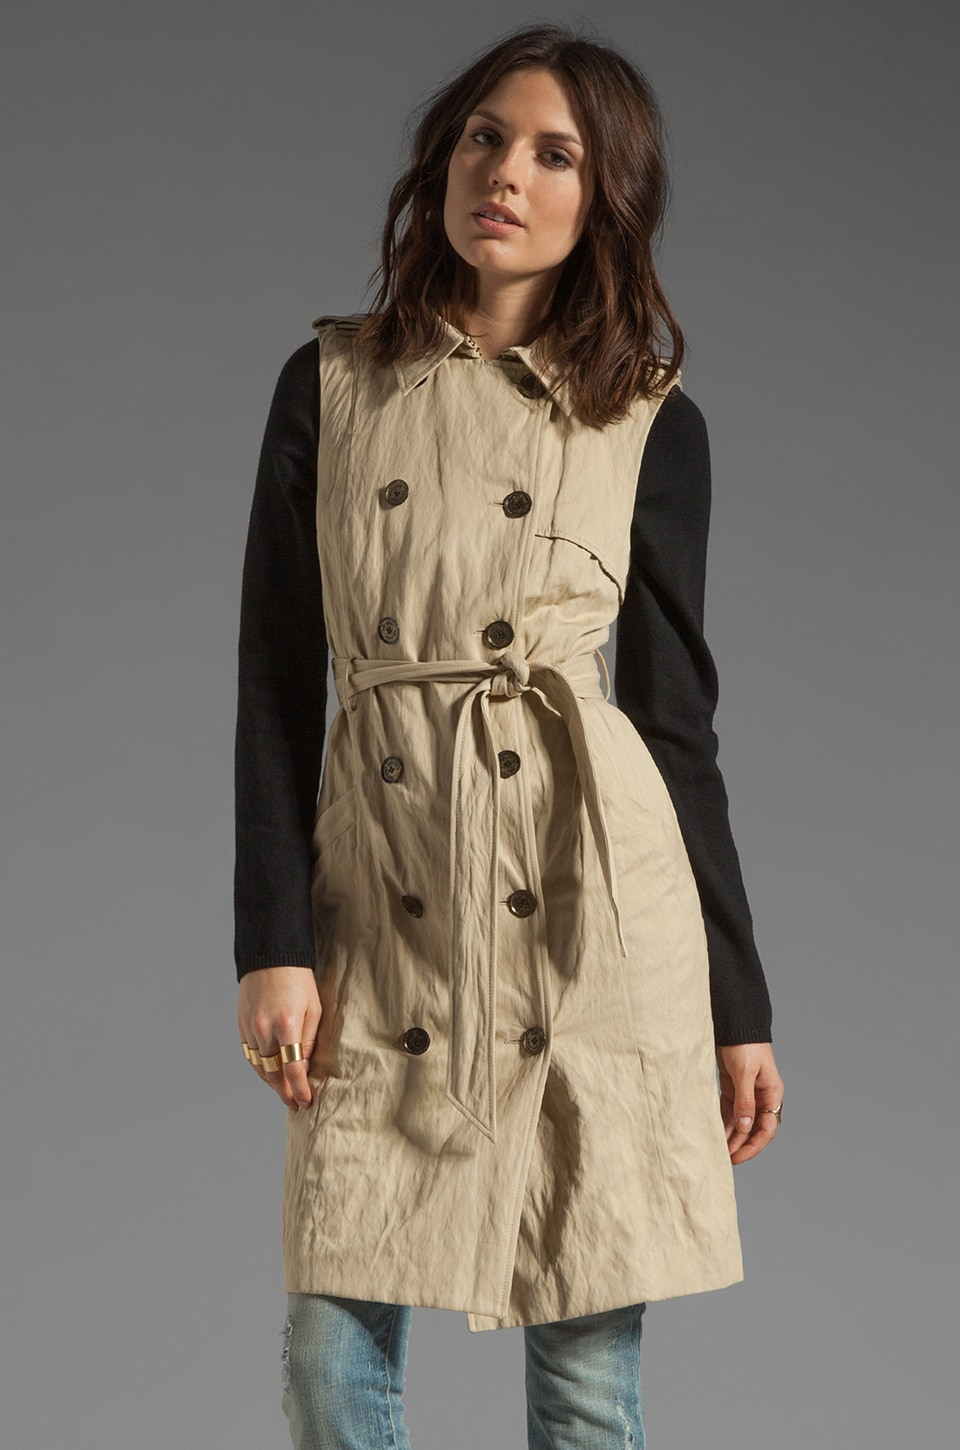 Gryphon Knit Sleeve Trench in Tan/Black